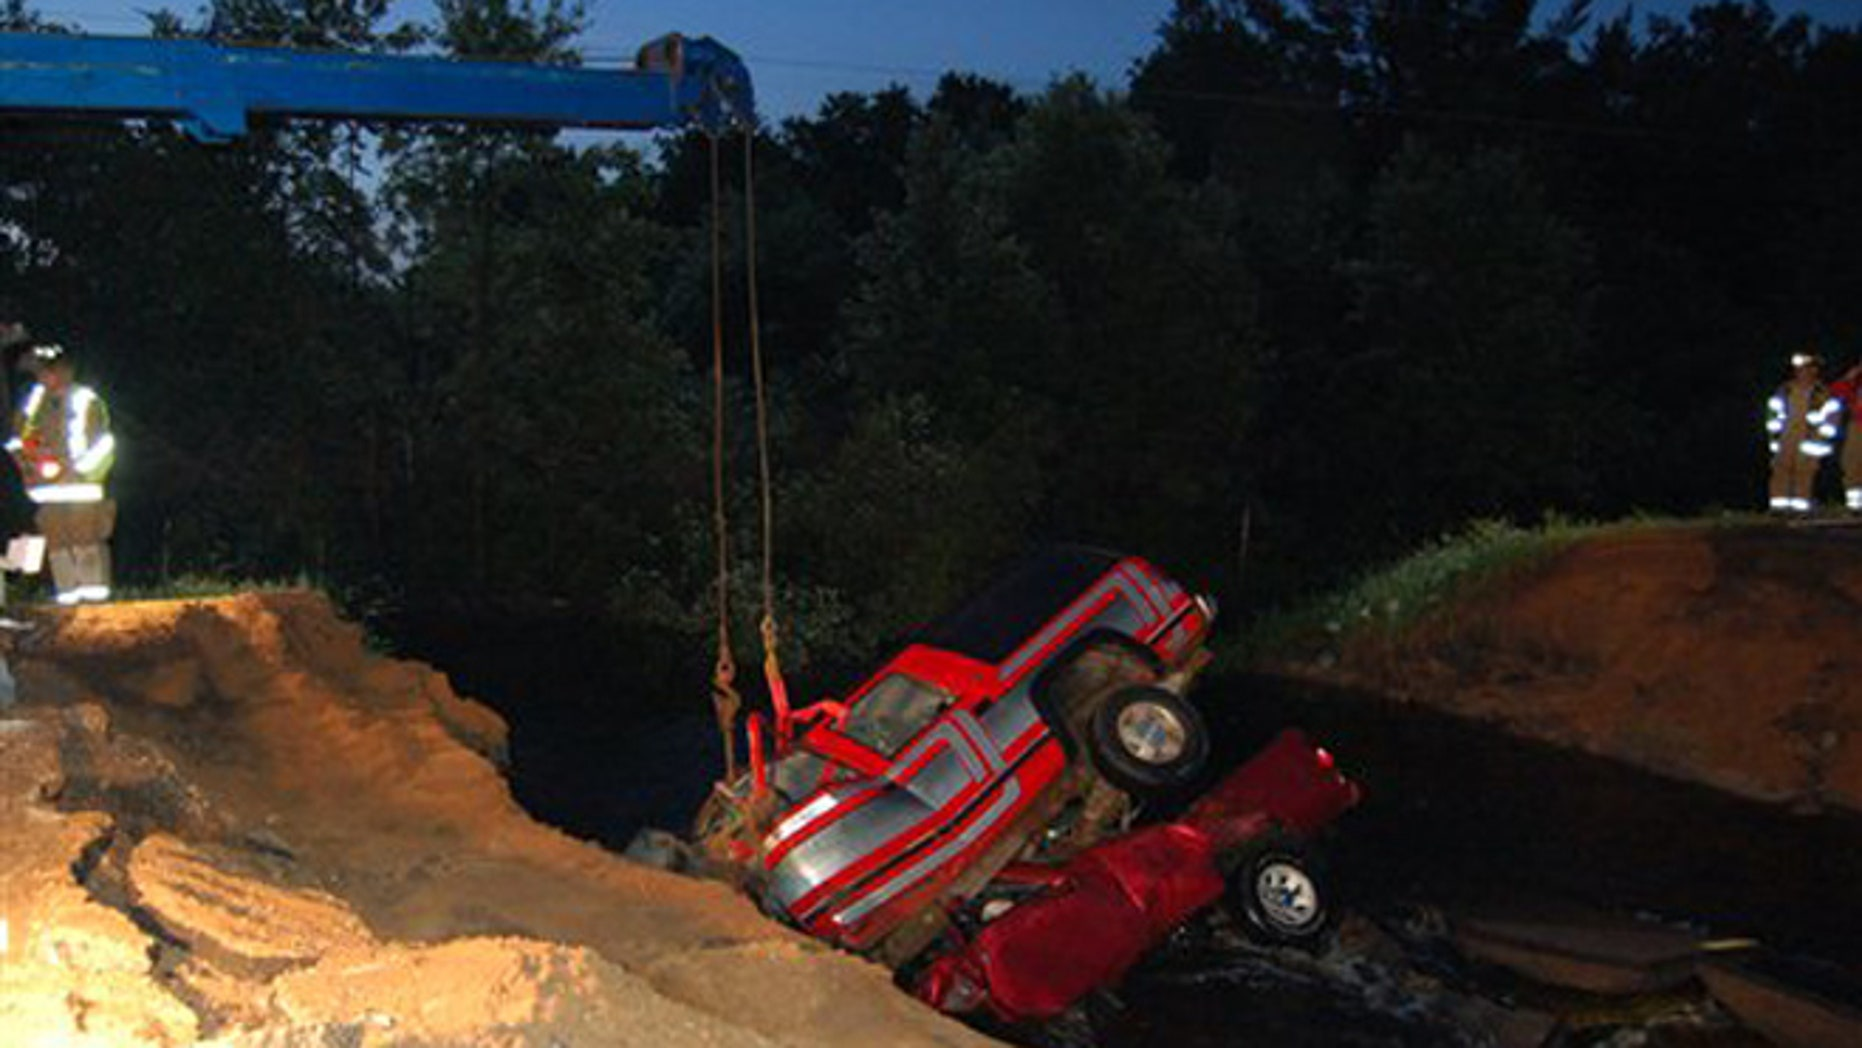 June 20, 2012: Clark County Sheriffs deputies watch as two vehicles are extracted from a washout hole after they crashed in to the large hole created by heavy rains, killing three people, on county road M near Neillsville, Wis.